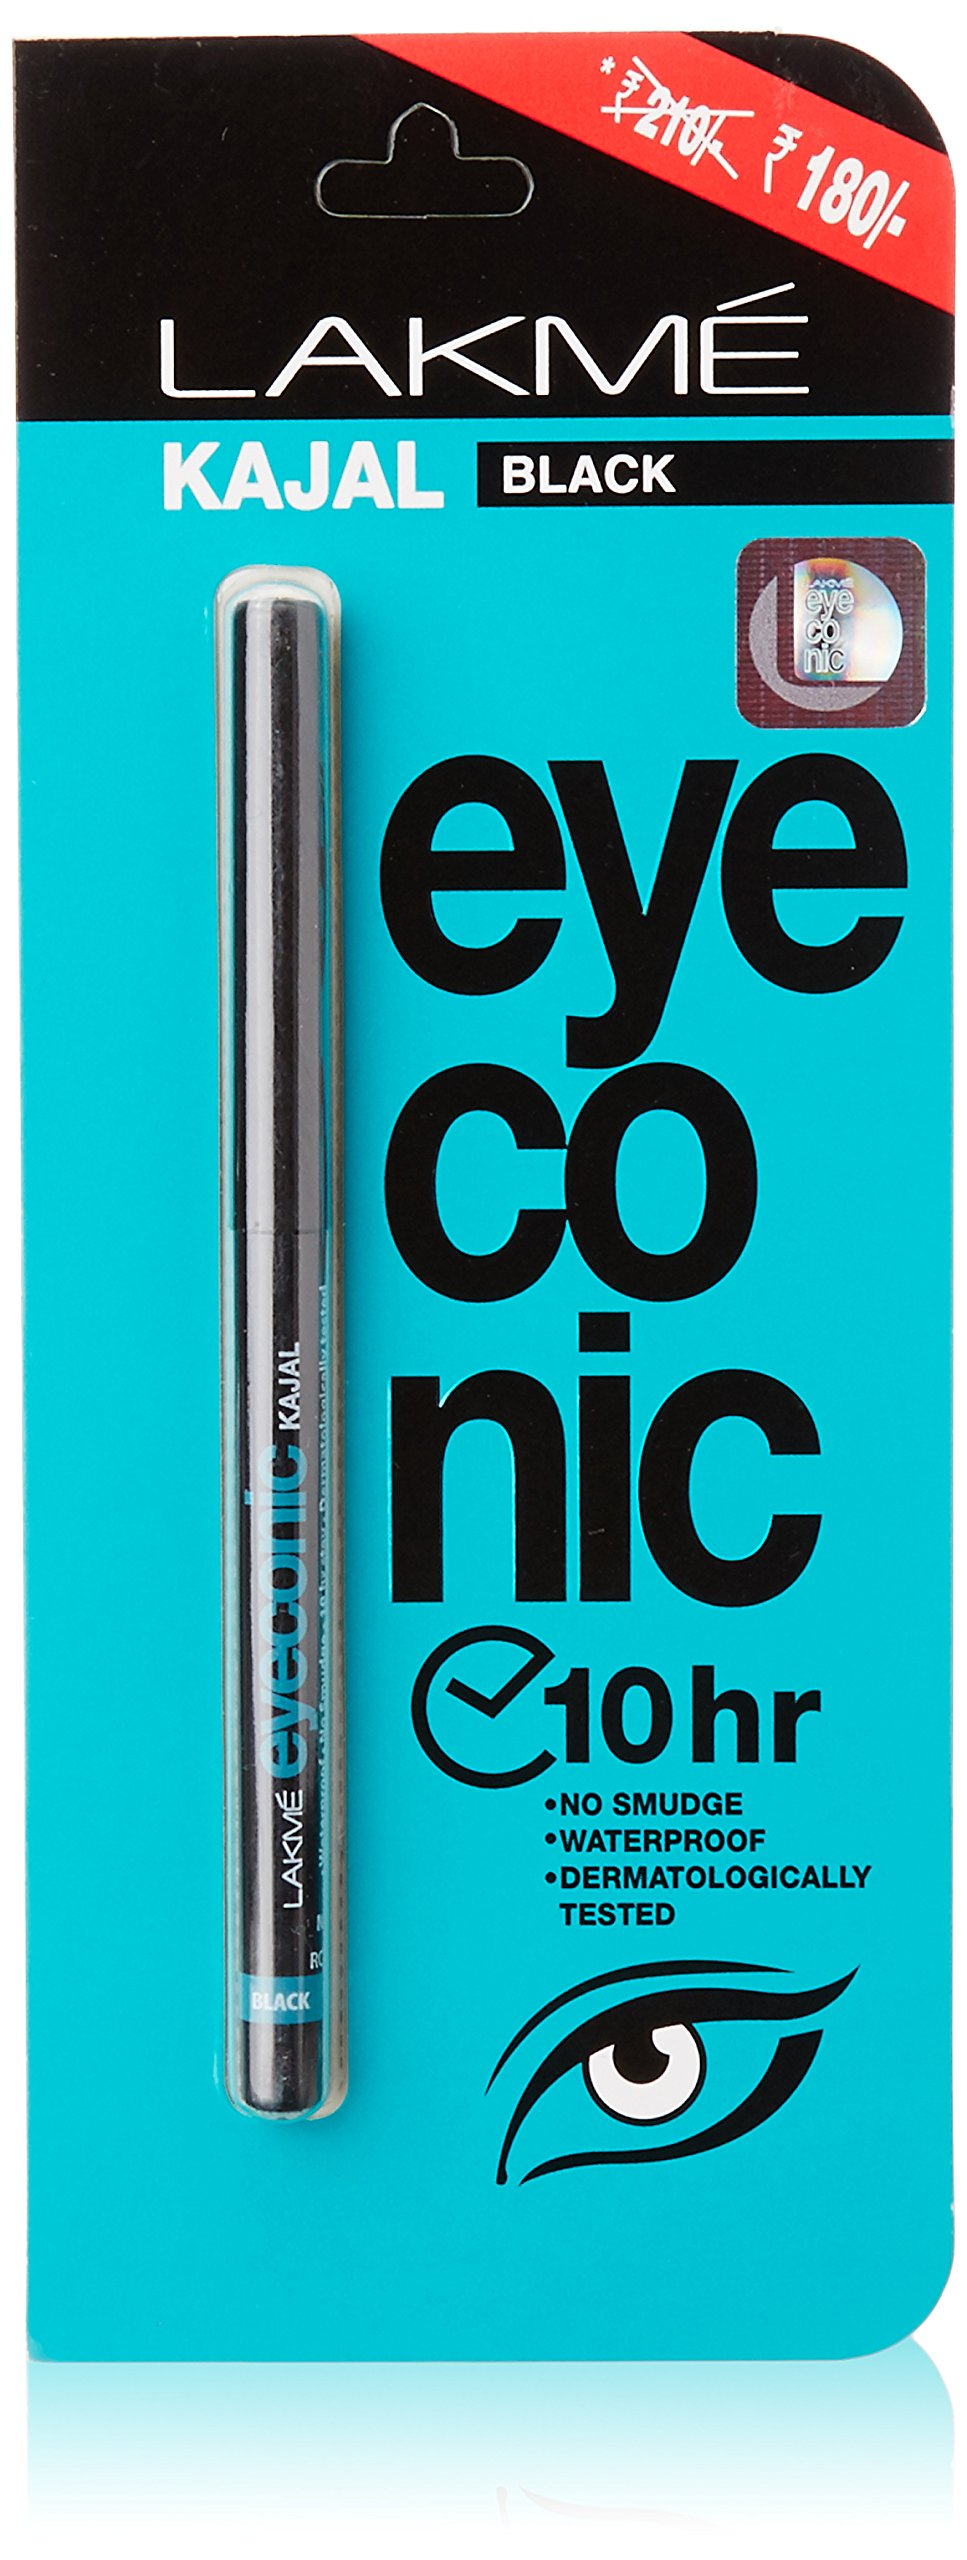 Lakme Eyeconic Kajal, Black, 0.35g (Rs 30 Off) product image